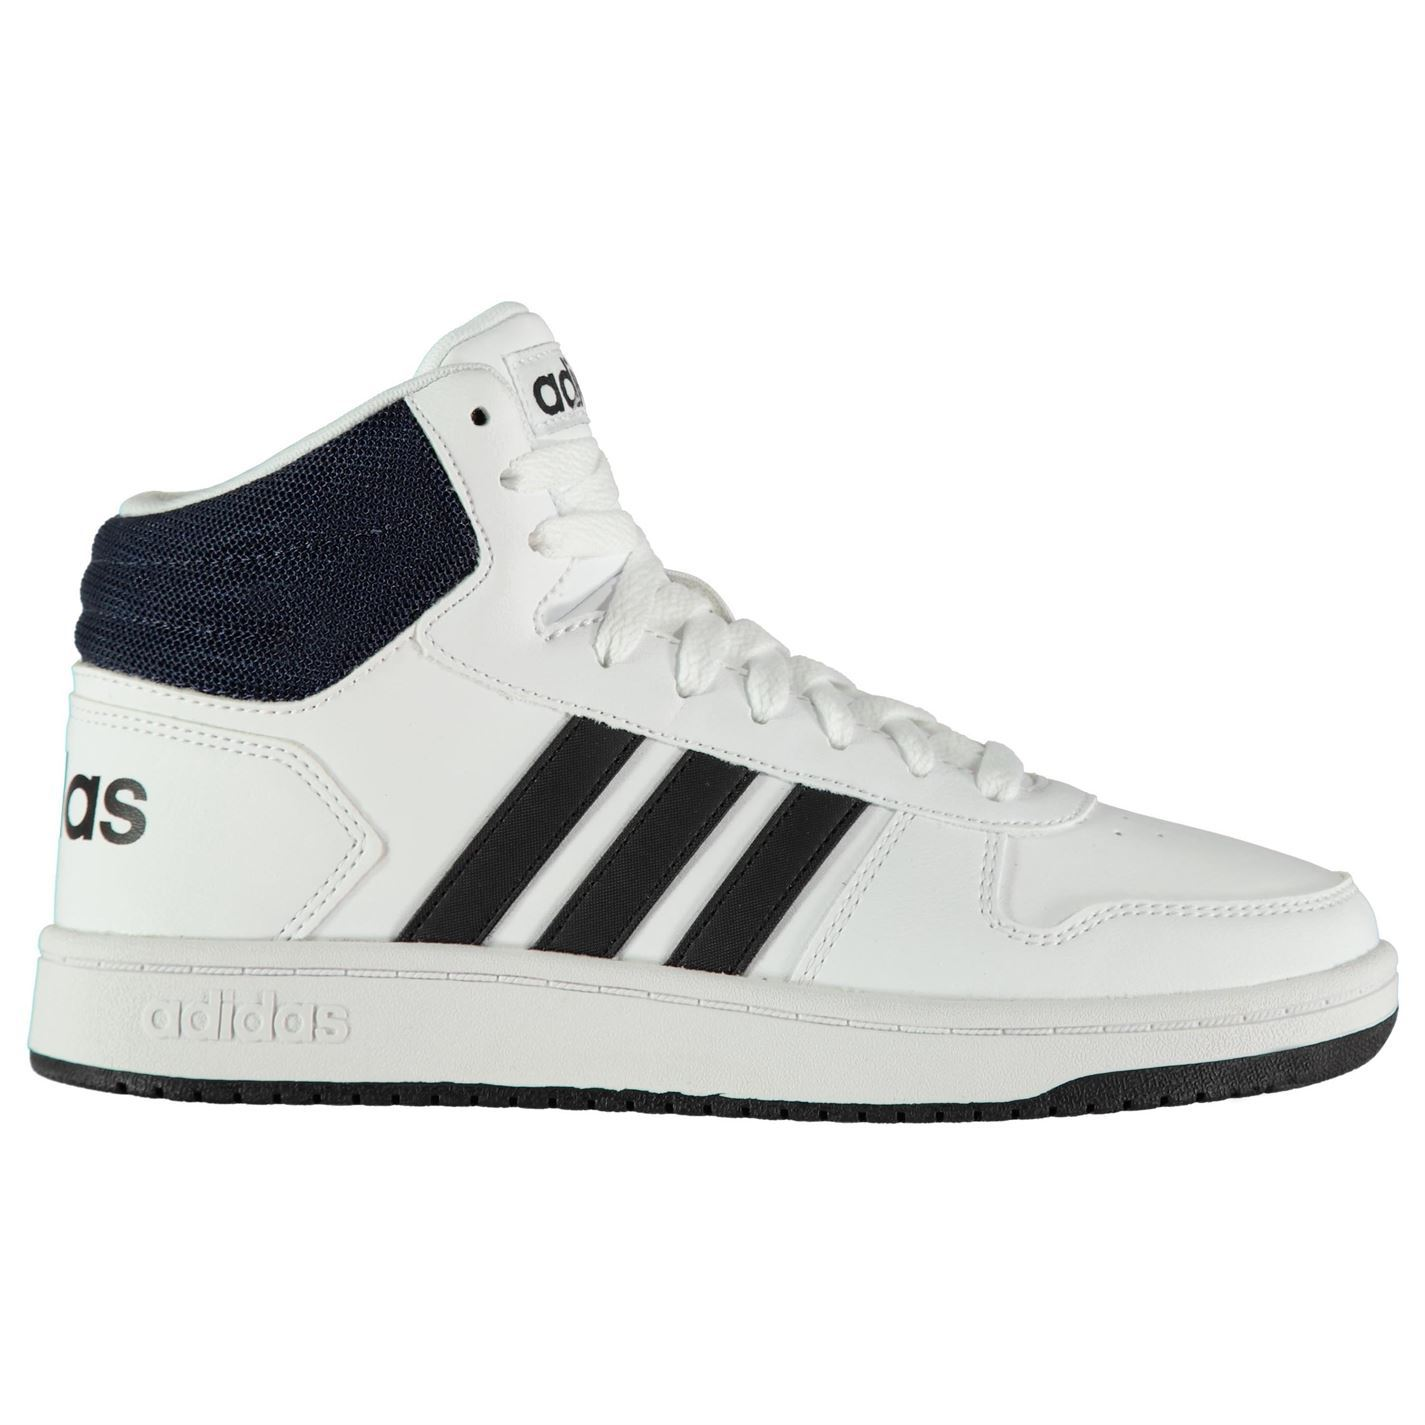 adidas Hoops Mid Top Sneakers Mens Gents High Padded Ankle Collar ... 0fa98b6ee2